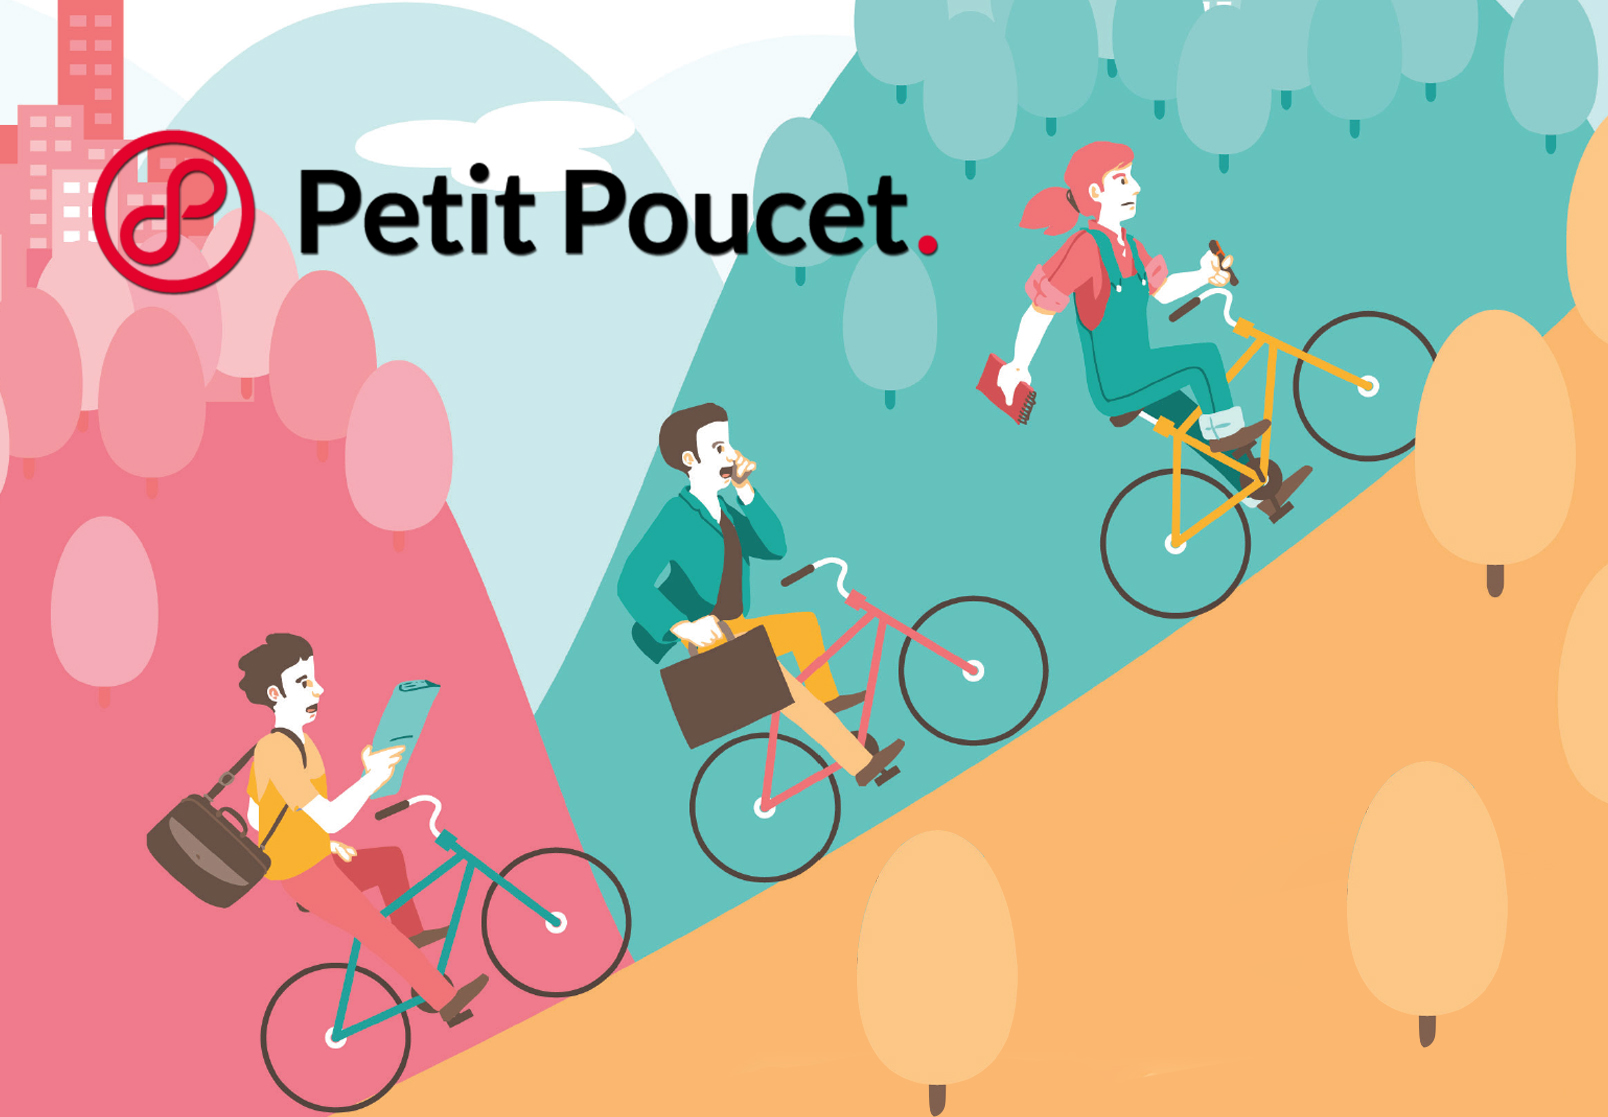 Petit Poucet 2019 contest: Obtain assistance and visibility for your venture